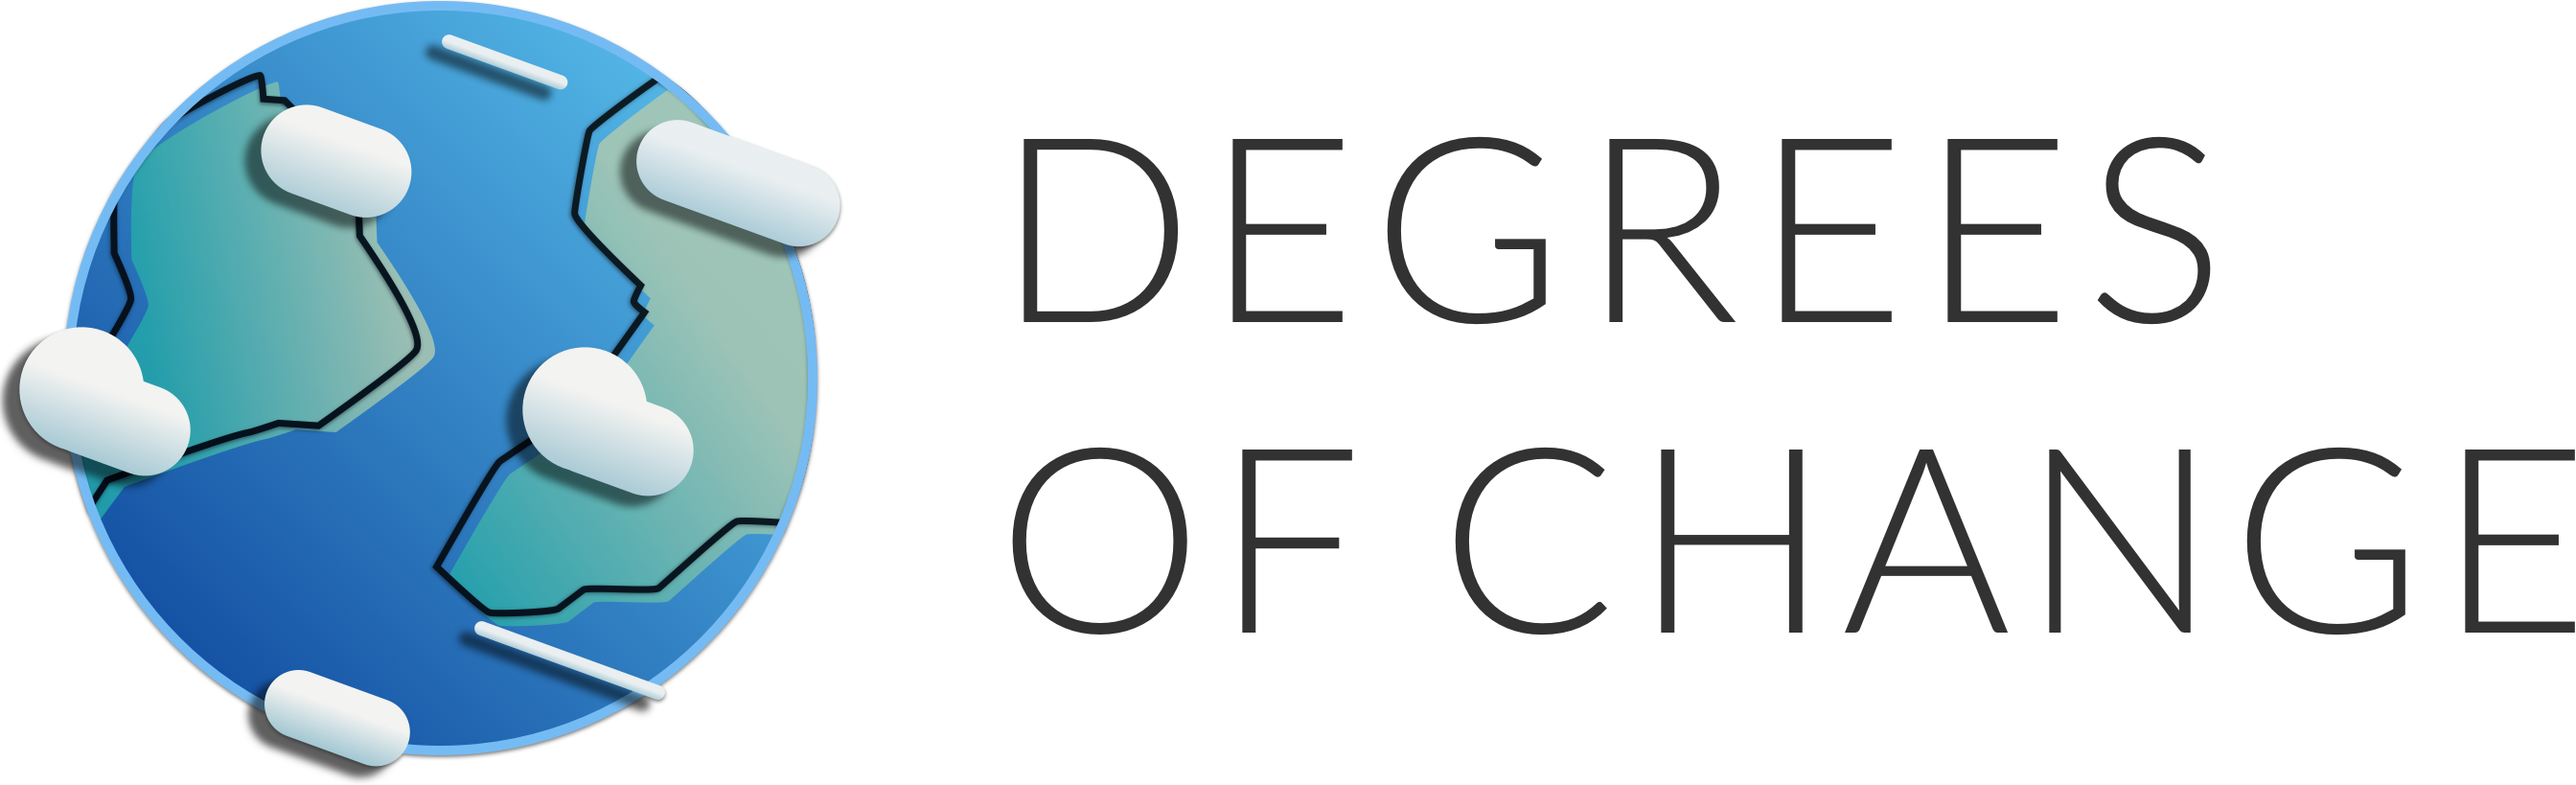 a stylized version of the earth with clouds, with the logo for degrees of change